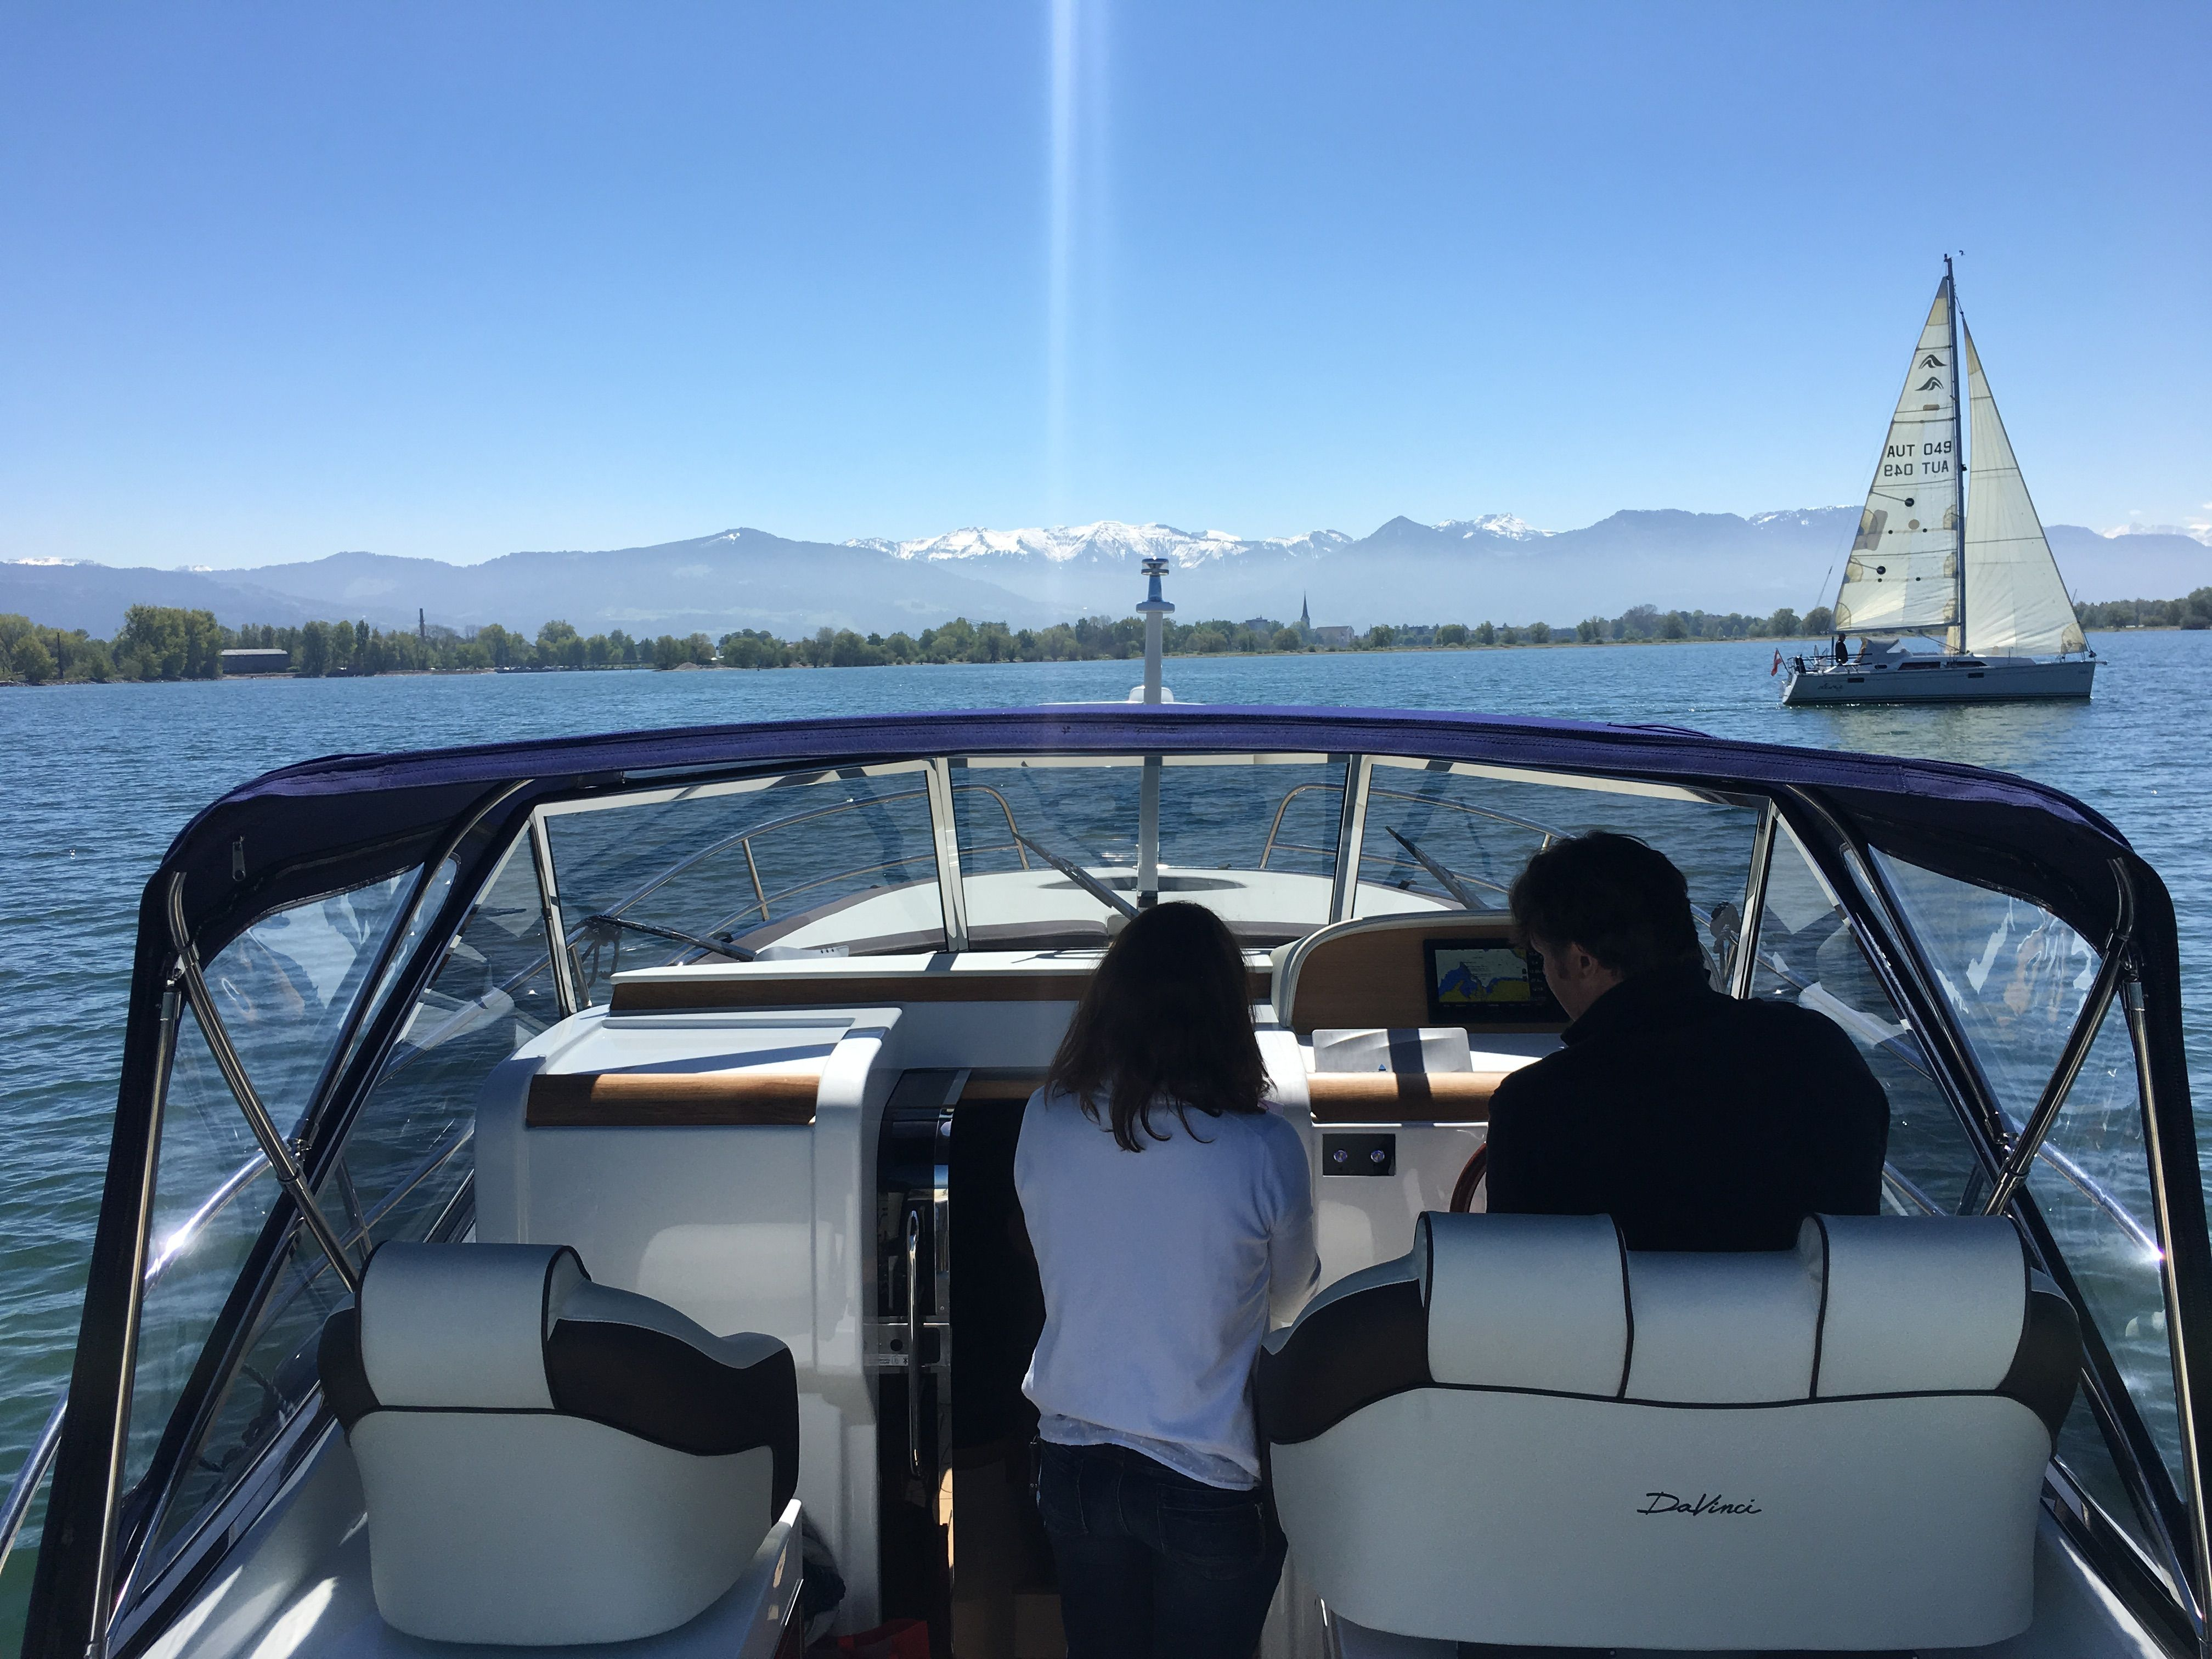 Discovering Austria With A Davinci Yacht Davinci Motoryachts Austria Davinci Yachts Worldwide Motor Yacht Sailing